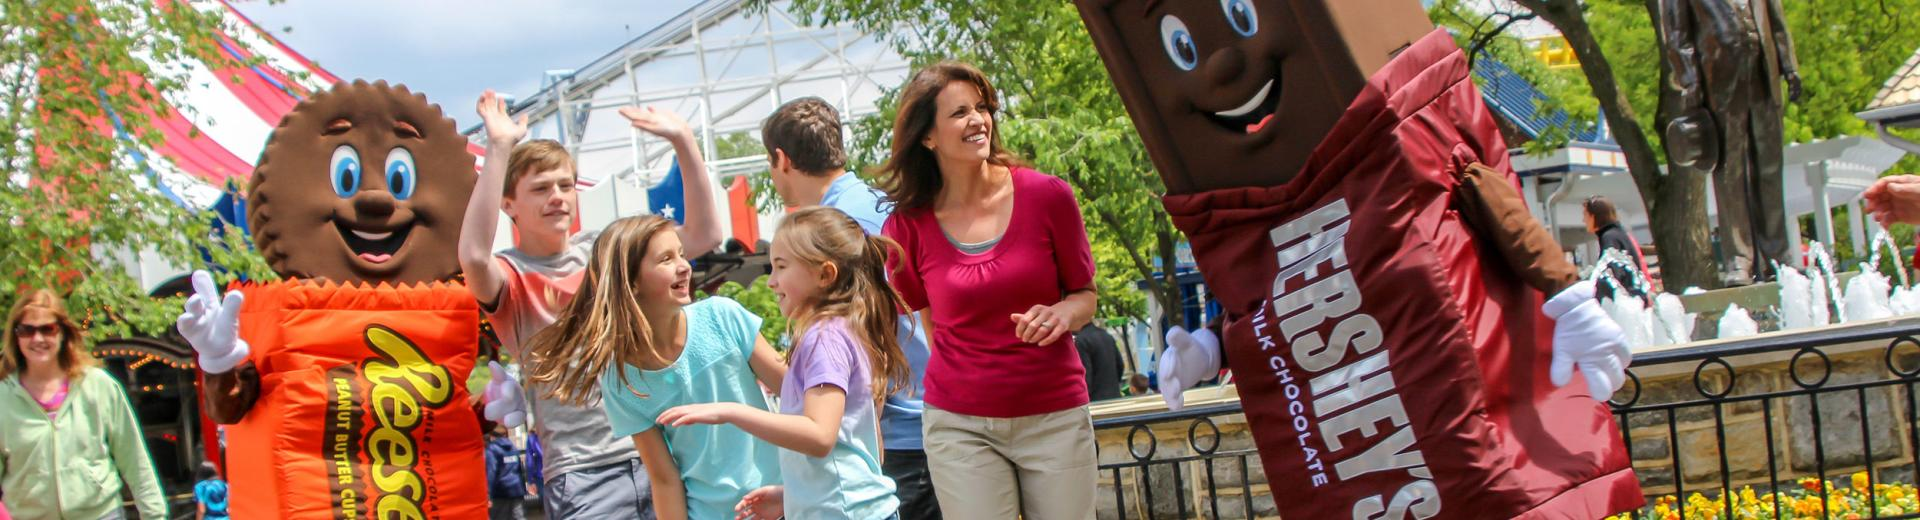 Family at Hershey amusement park with Hershey chocolate mascot